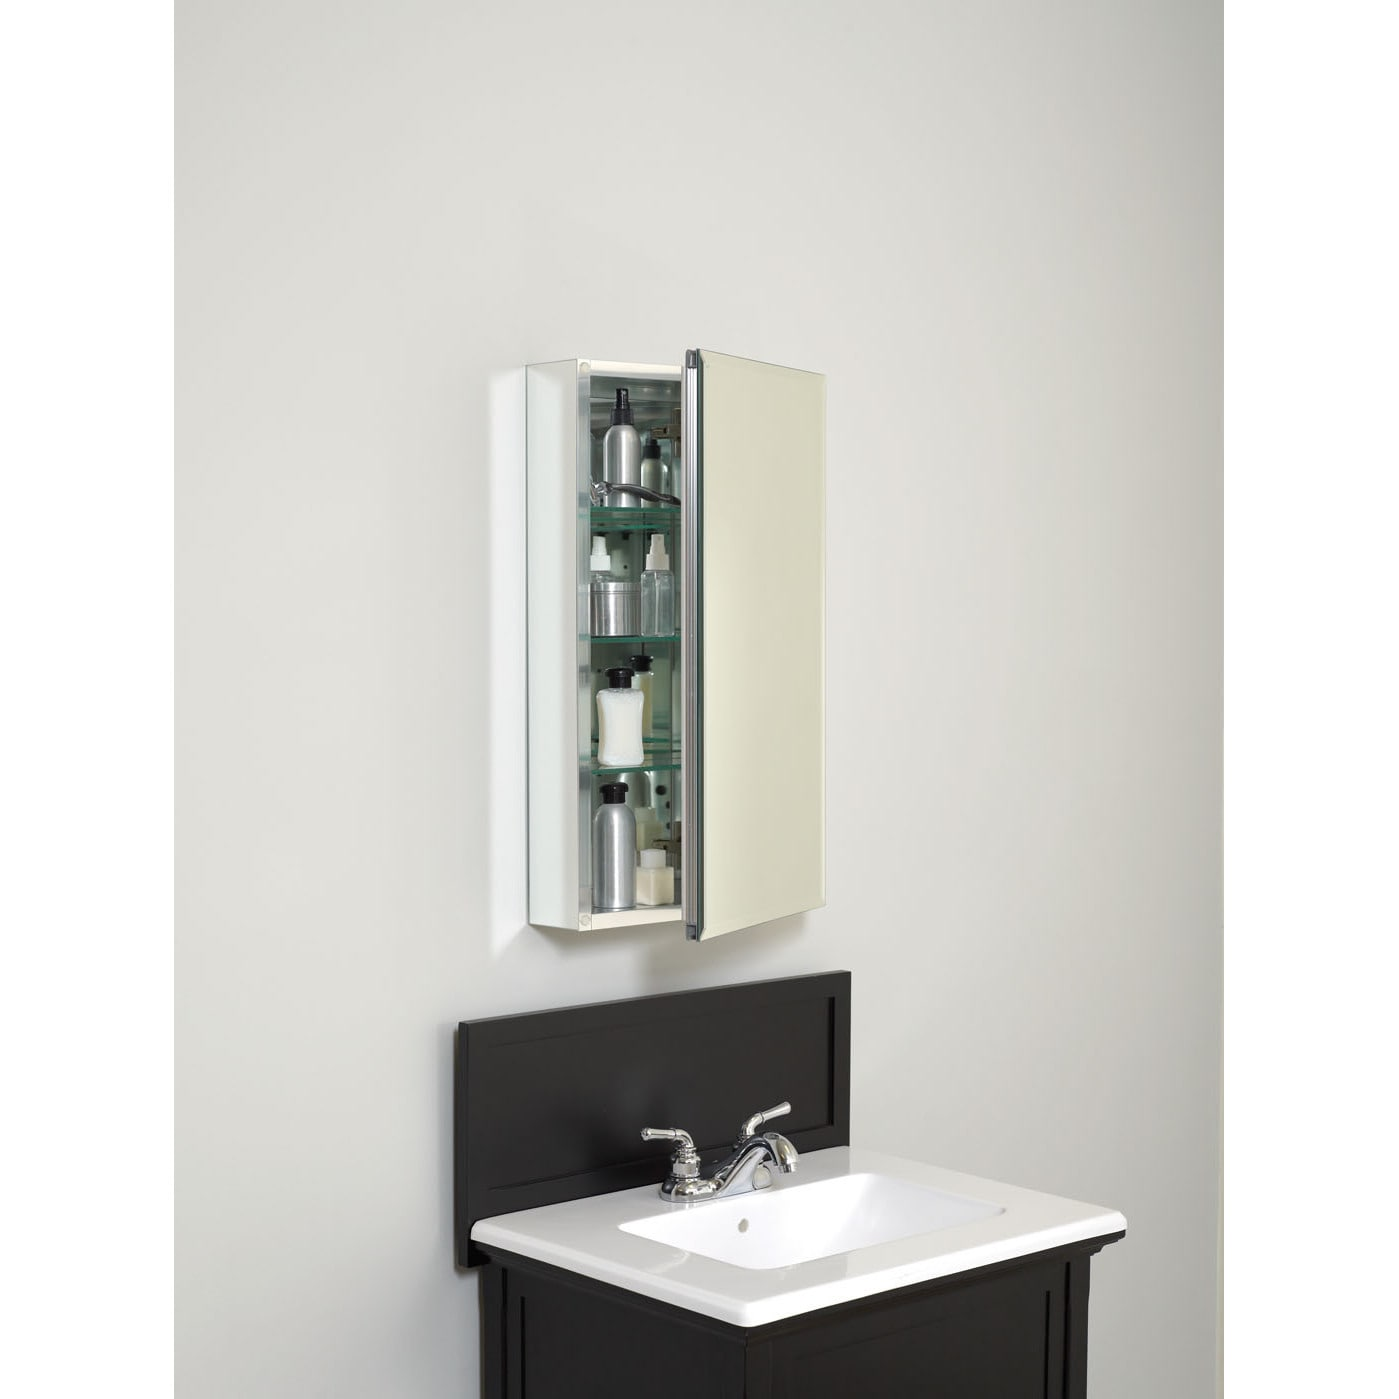 Zenith Frameless Aluminum 26 Inch Medicine Cabinet Free Shipping Today 16788551